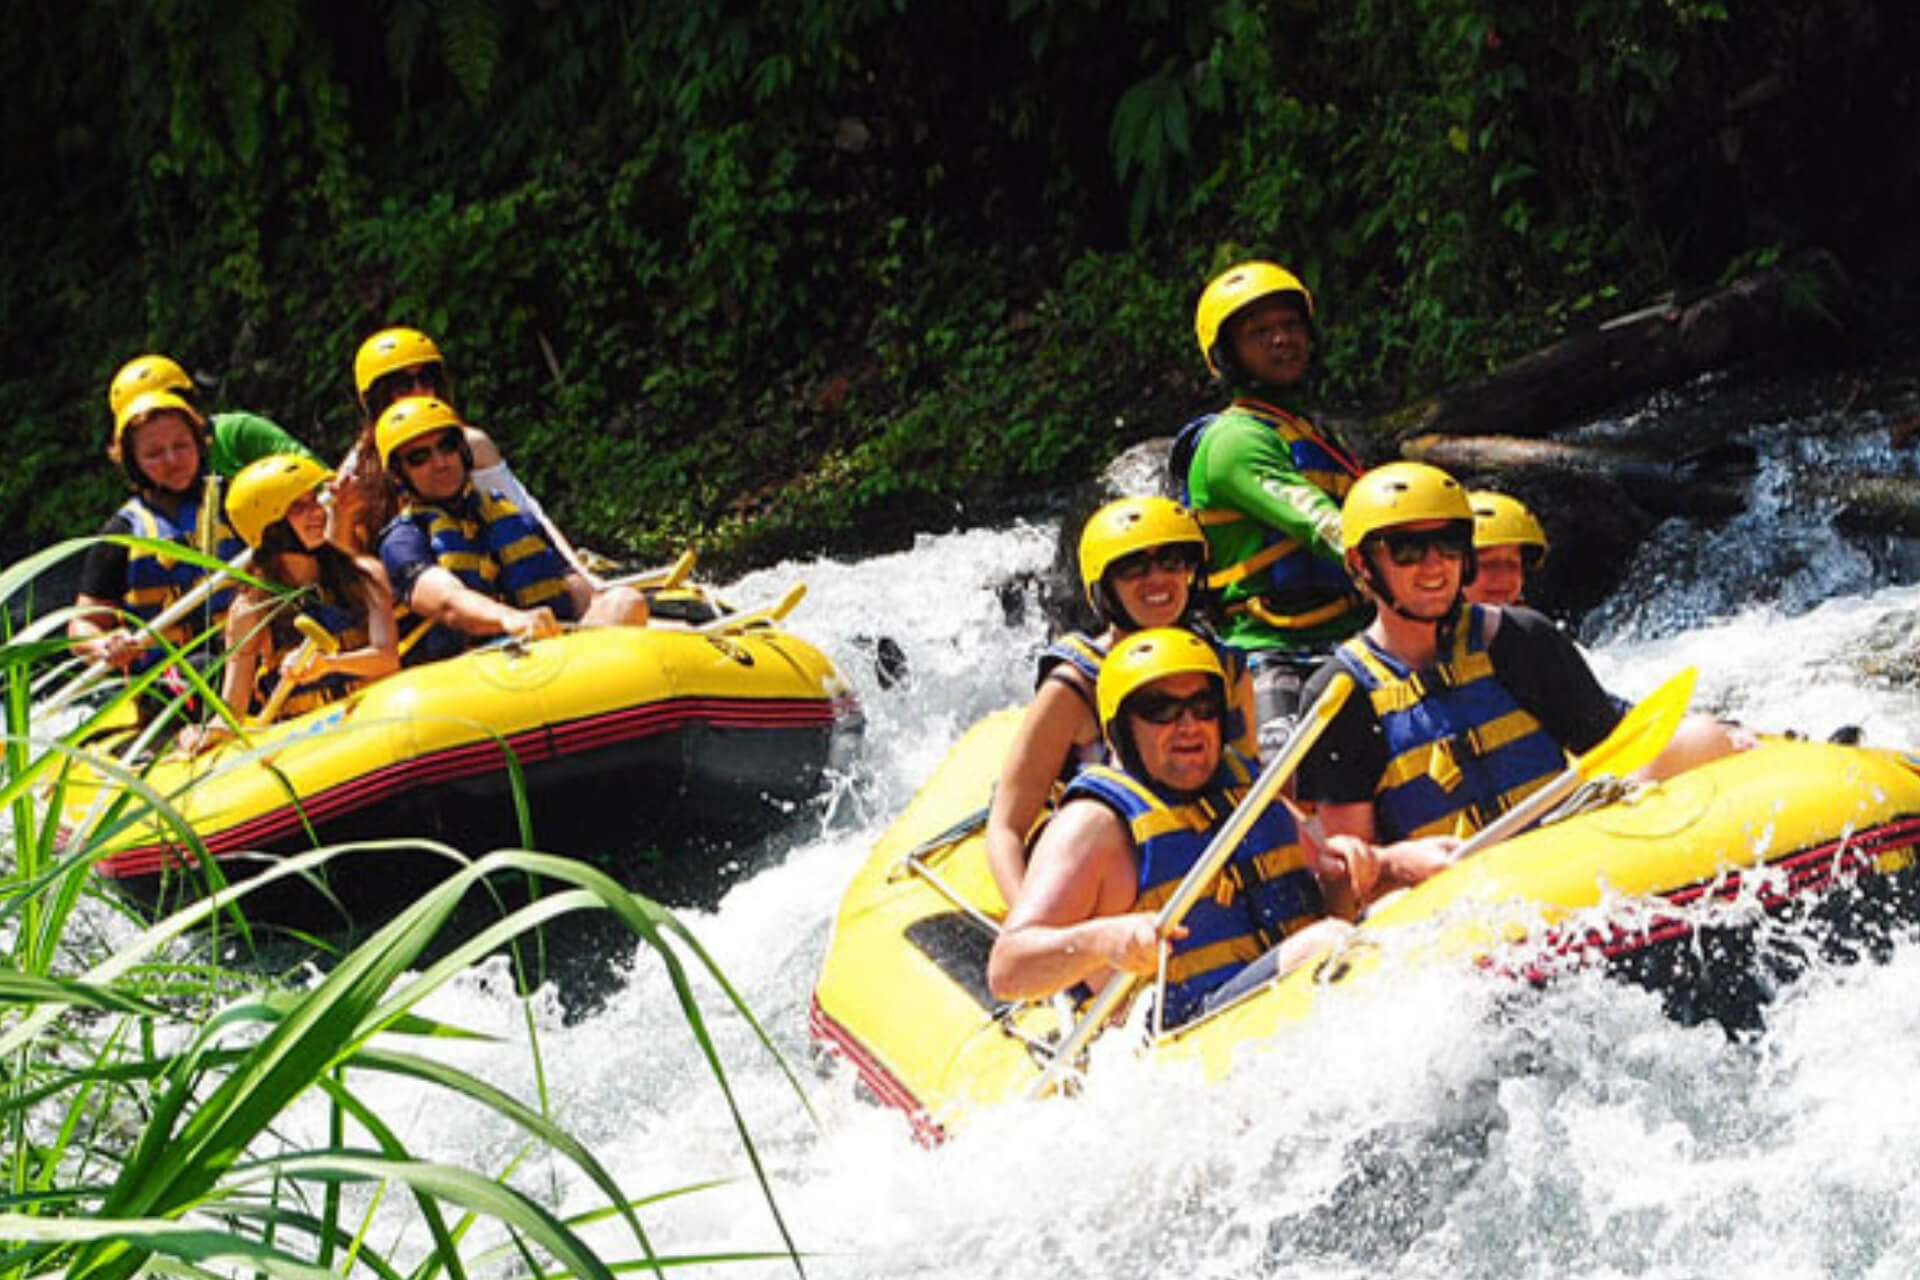 Alam Adventures Telaga Waja River White Water Rafting